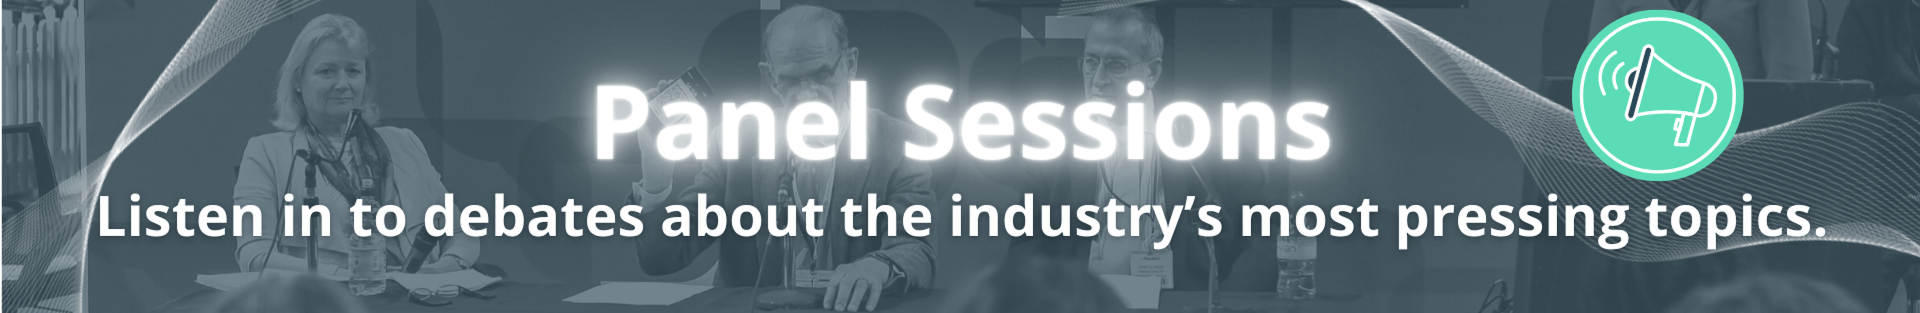 Panel Sessions. Listen in to debates about the industry's most pressing topics.